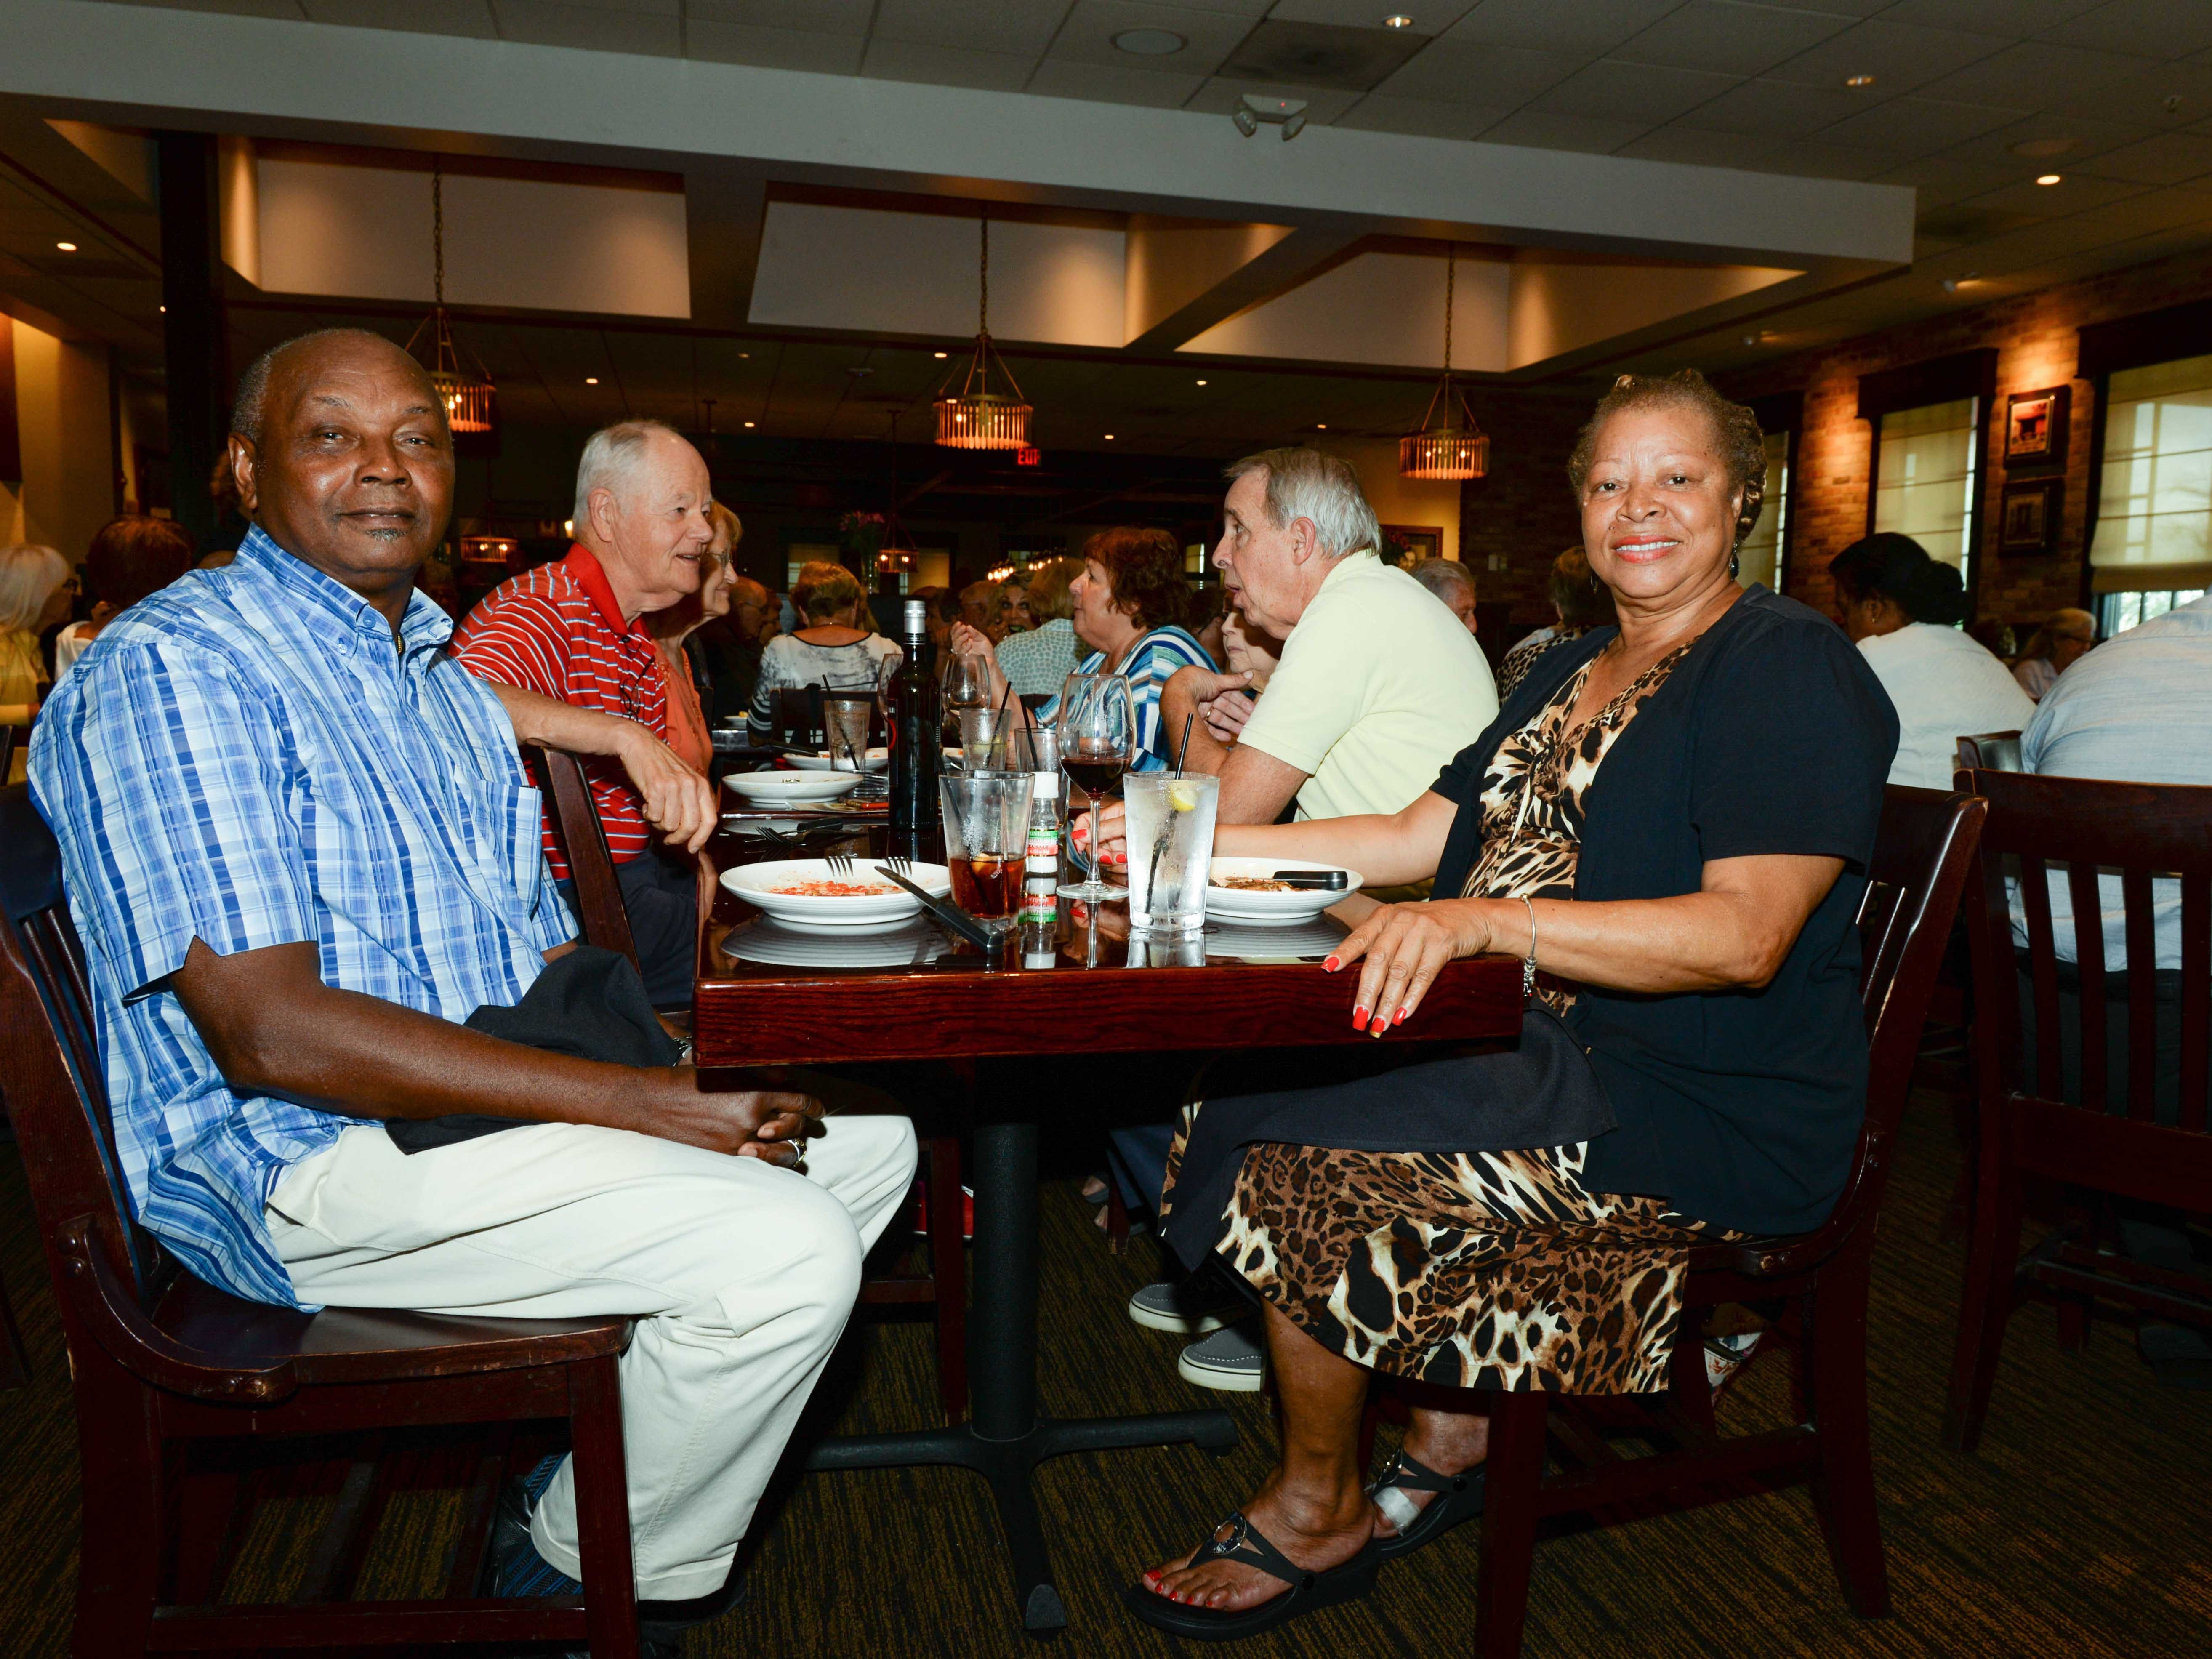 Charles and Thelma Castro at Carrabba's Italian Grill in St. Lucie West for the Sarah's Kitchen luncheon.